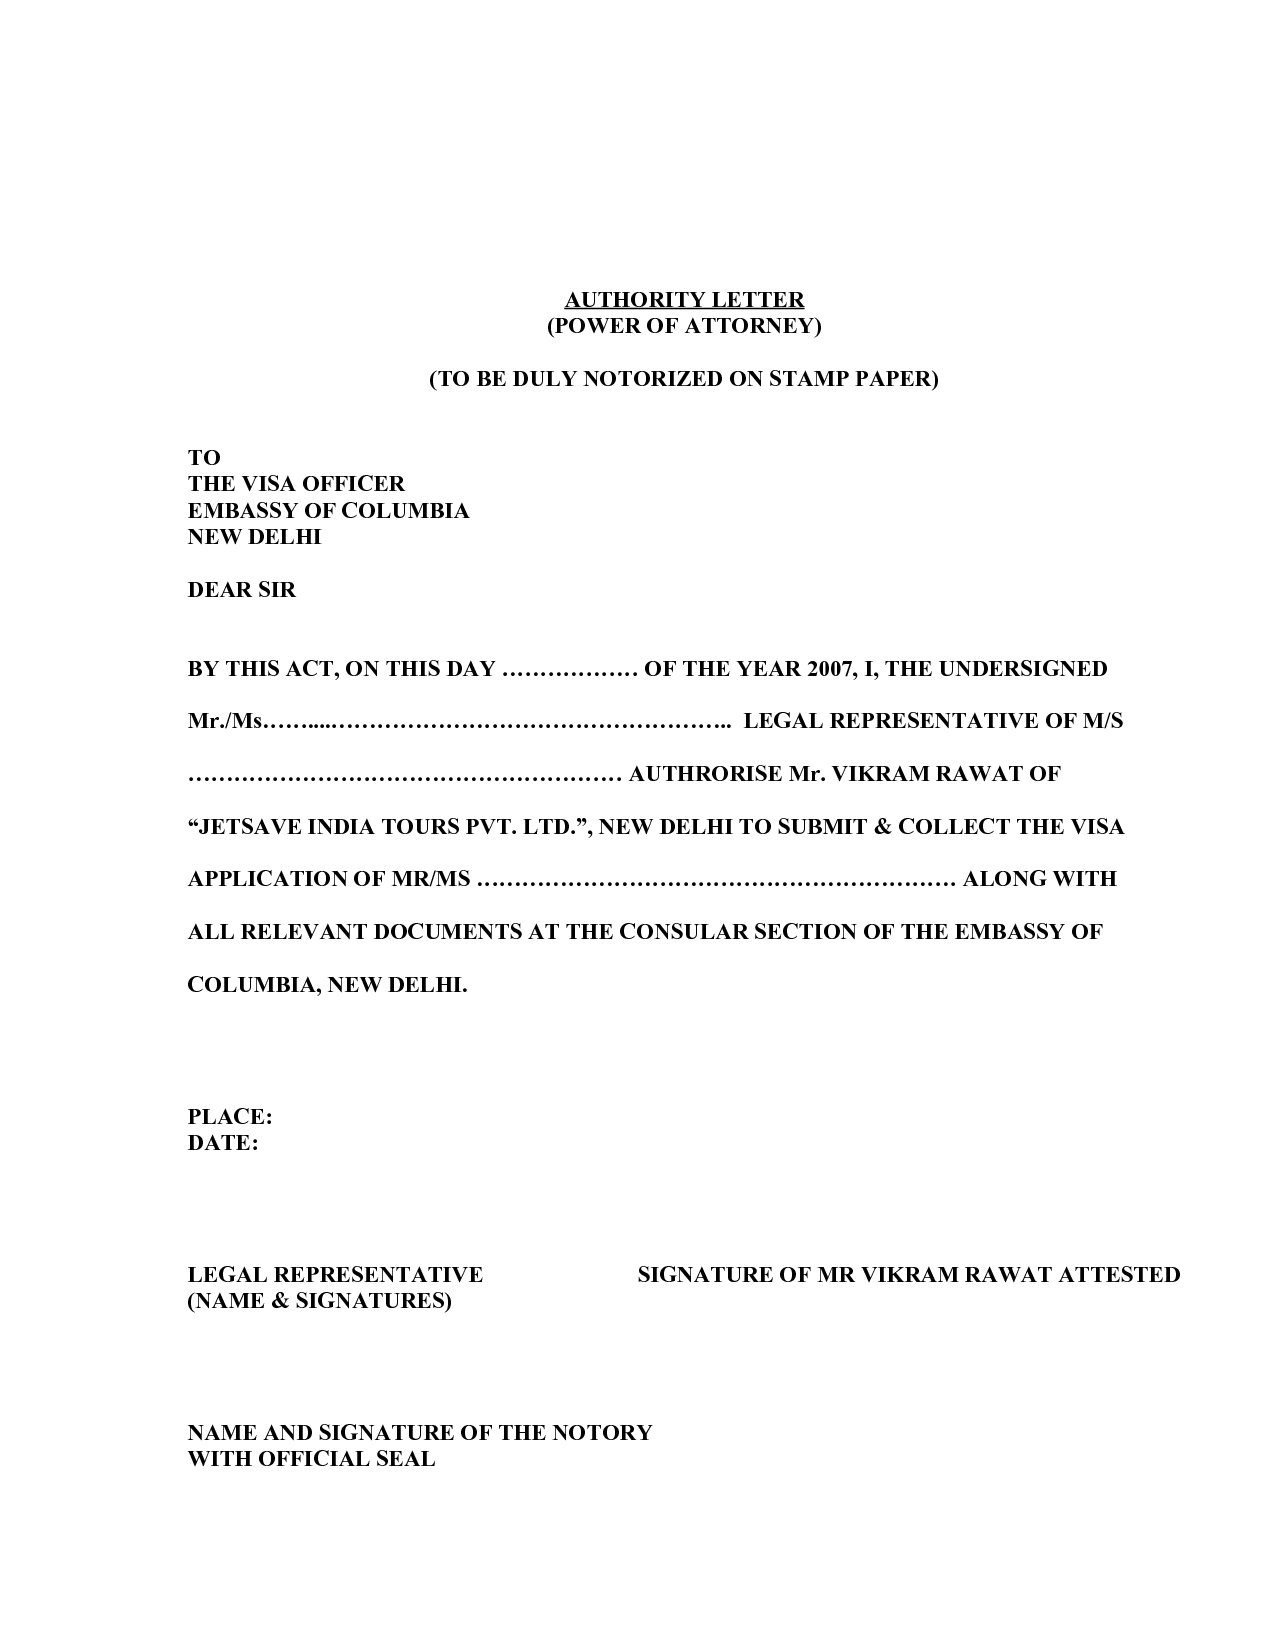 Law Firm Letter Template - Power Of attorney Letter Example Acurnamedia